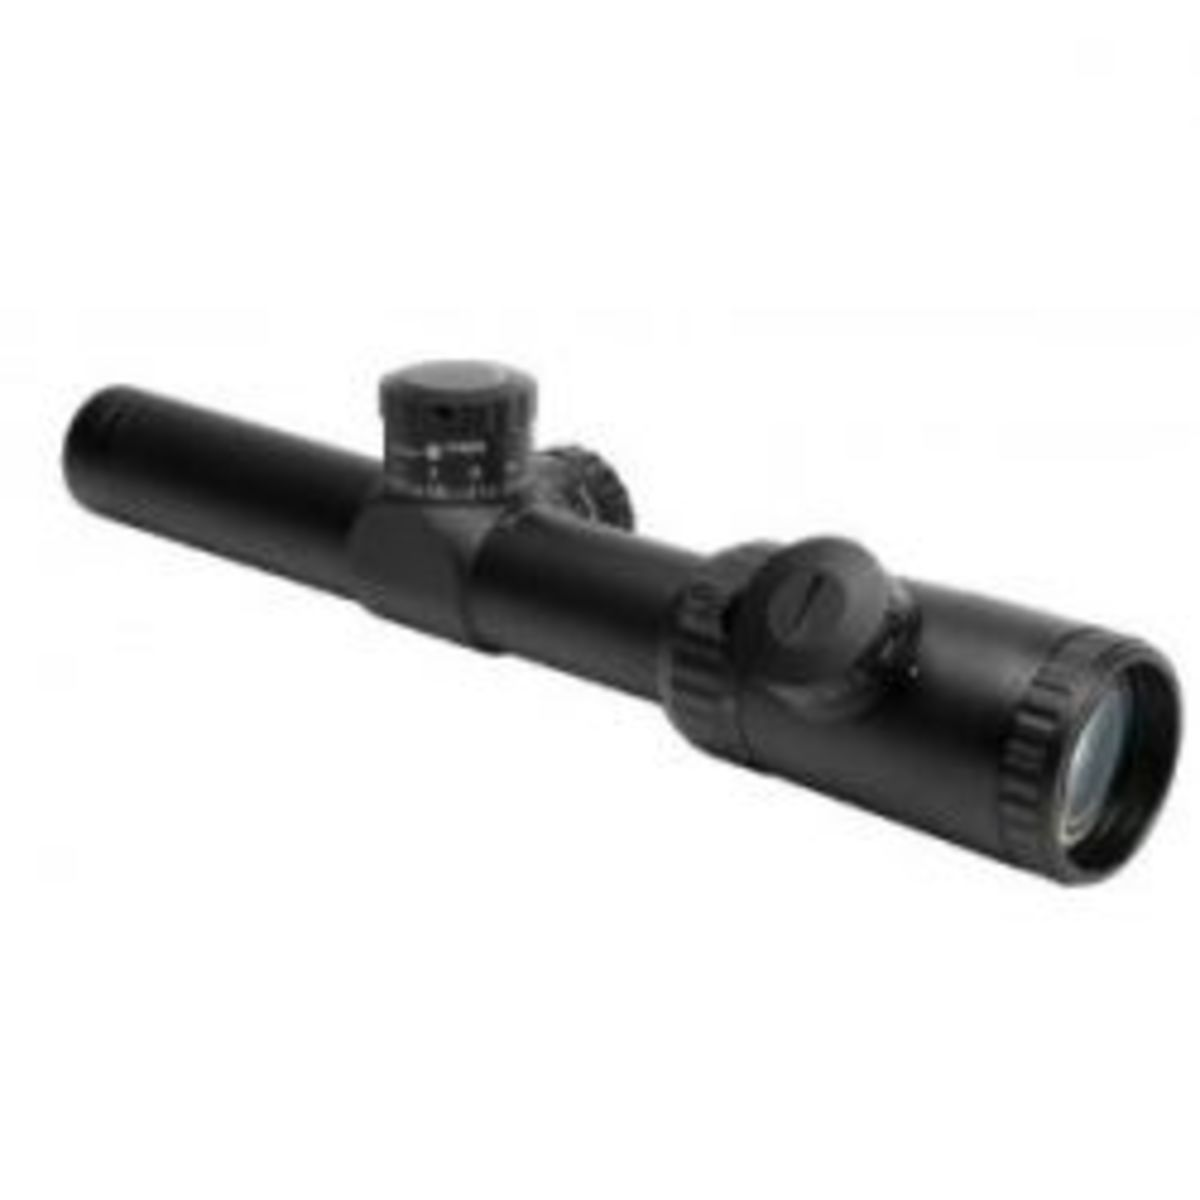 Best AR 15 scope under $200